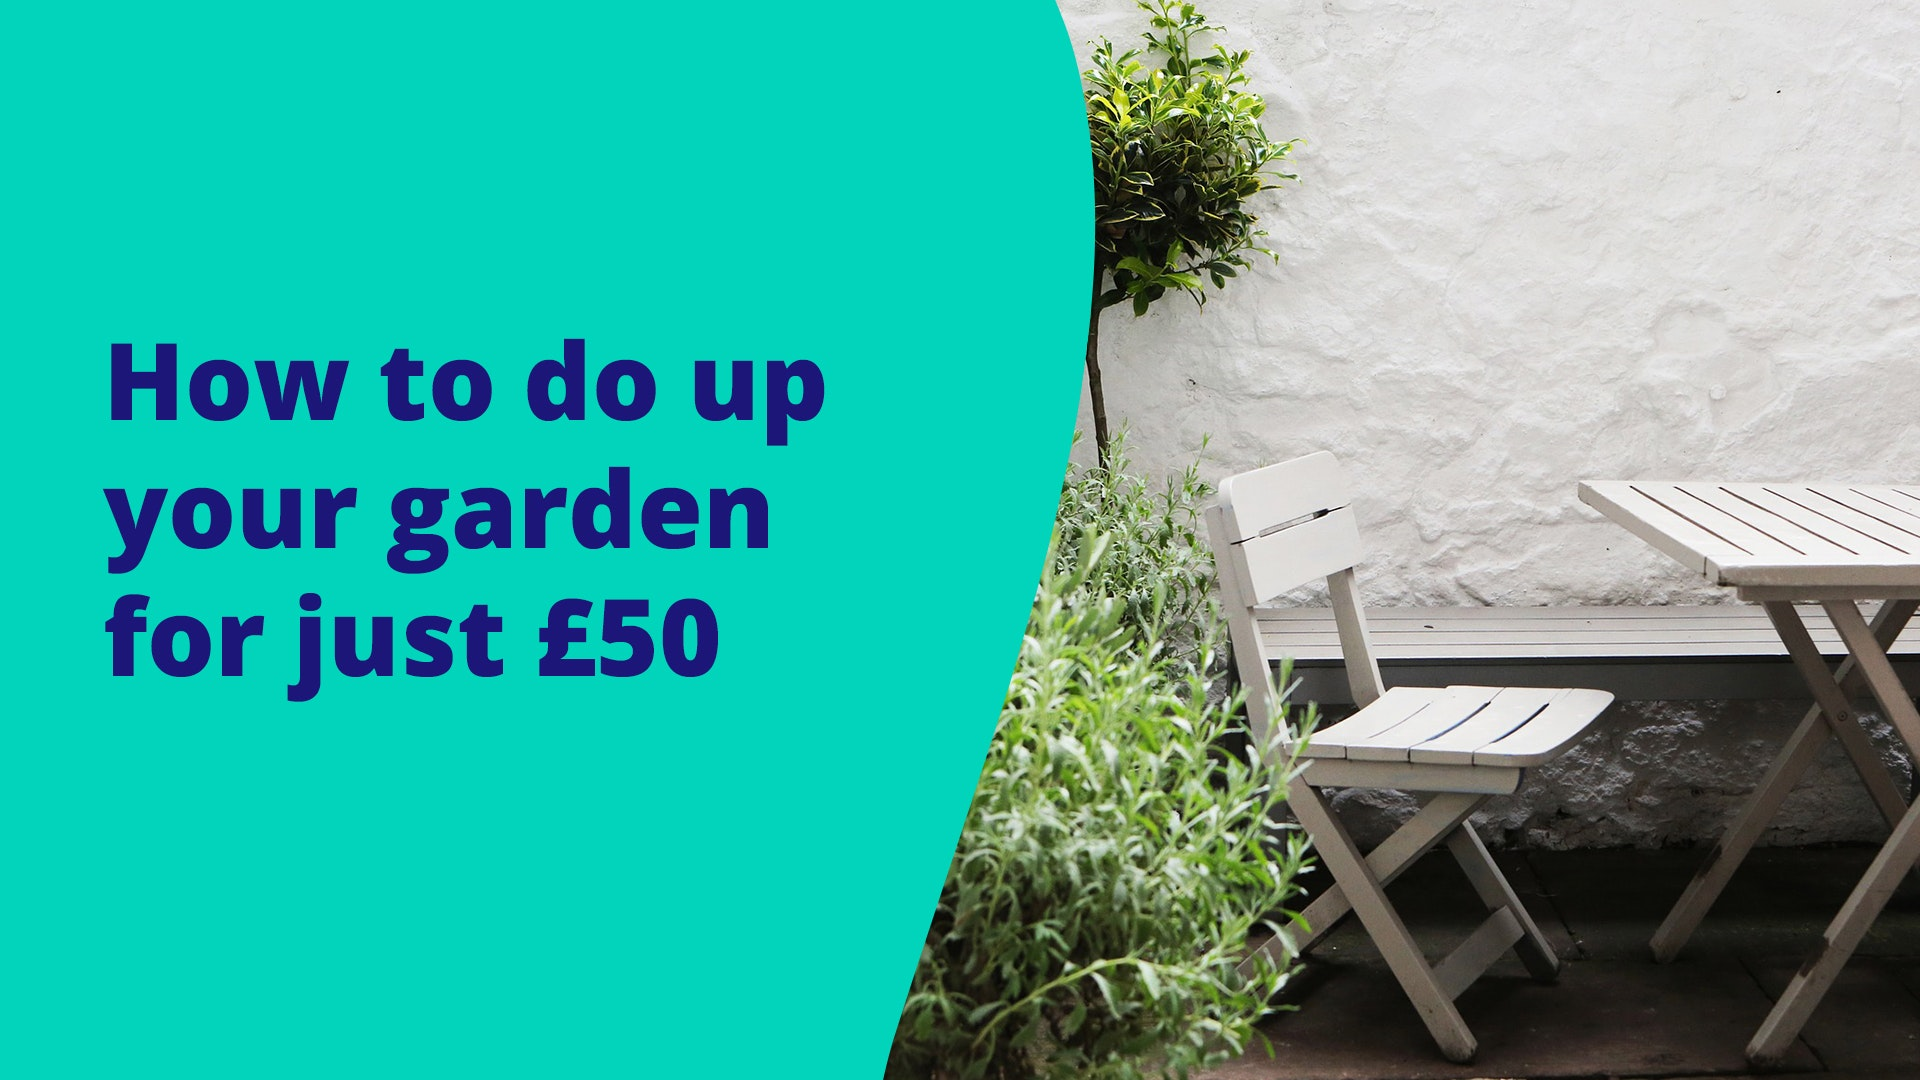 six-ways-to-do-up-your-garden-for-under-gbp50